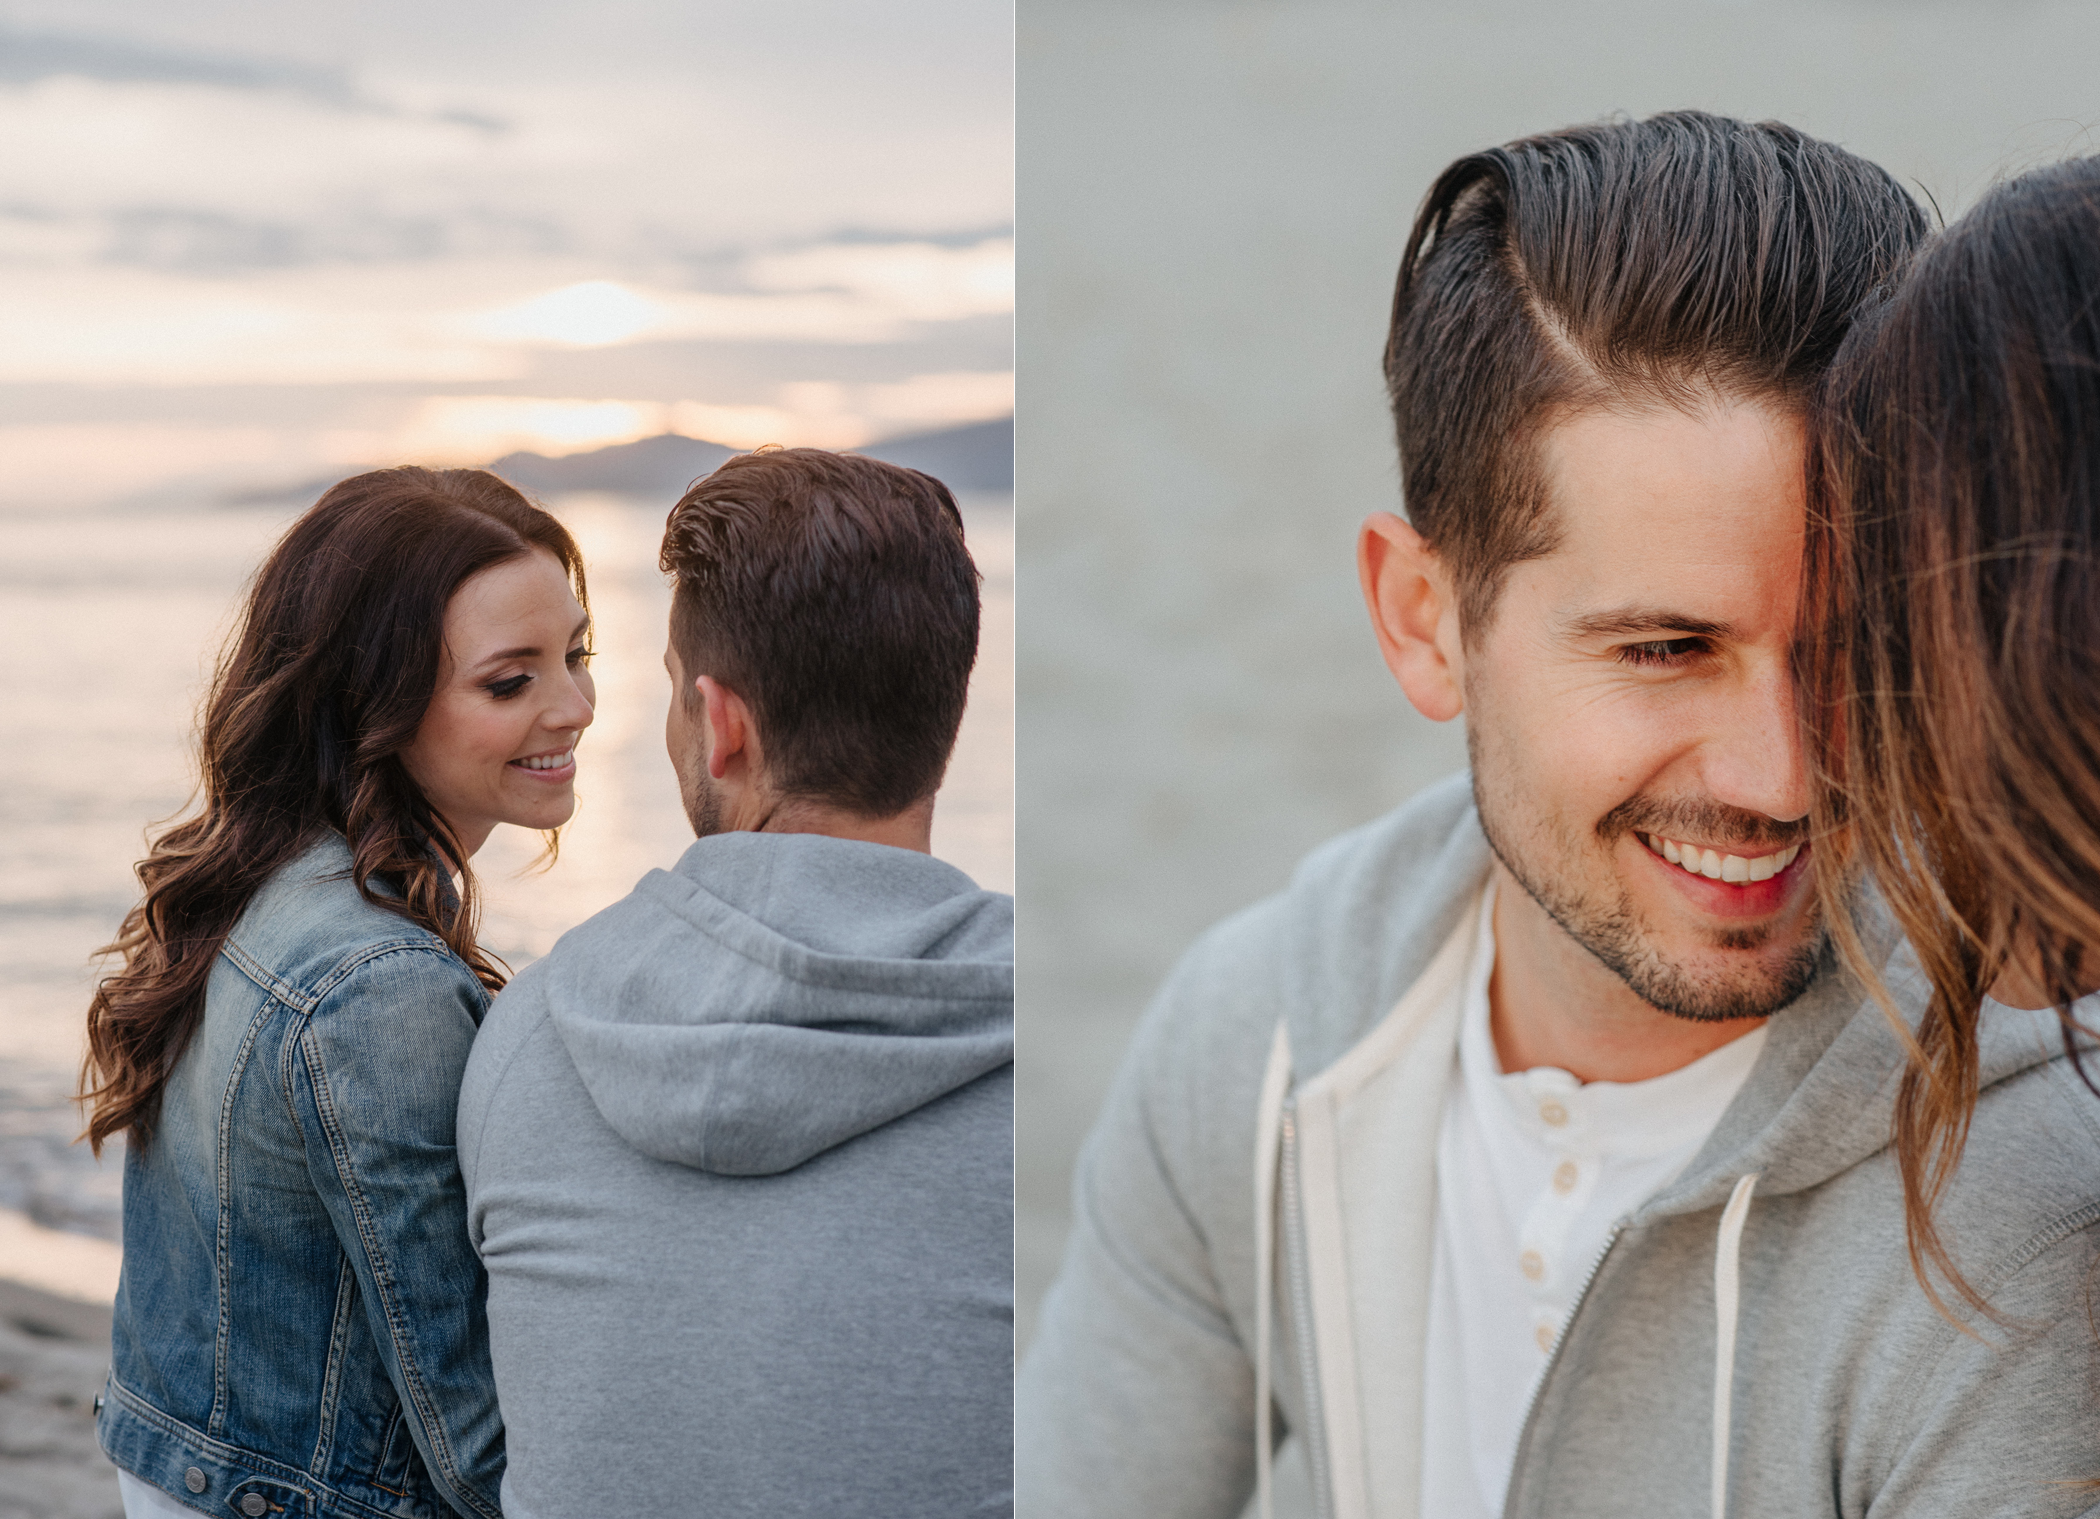 017-kaoverii-silva-LA-prewedding-vancouver-photography.png